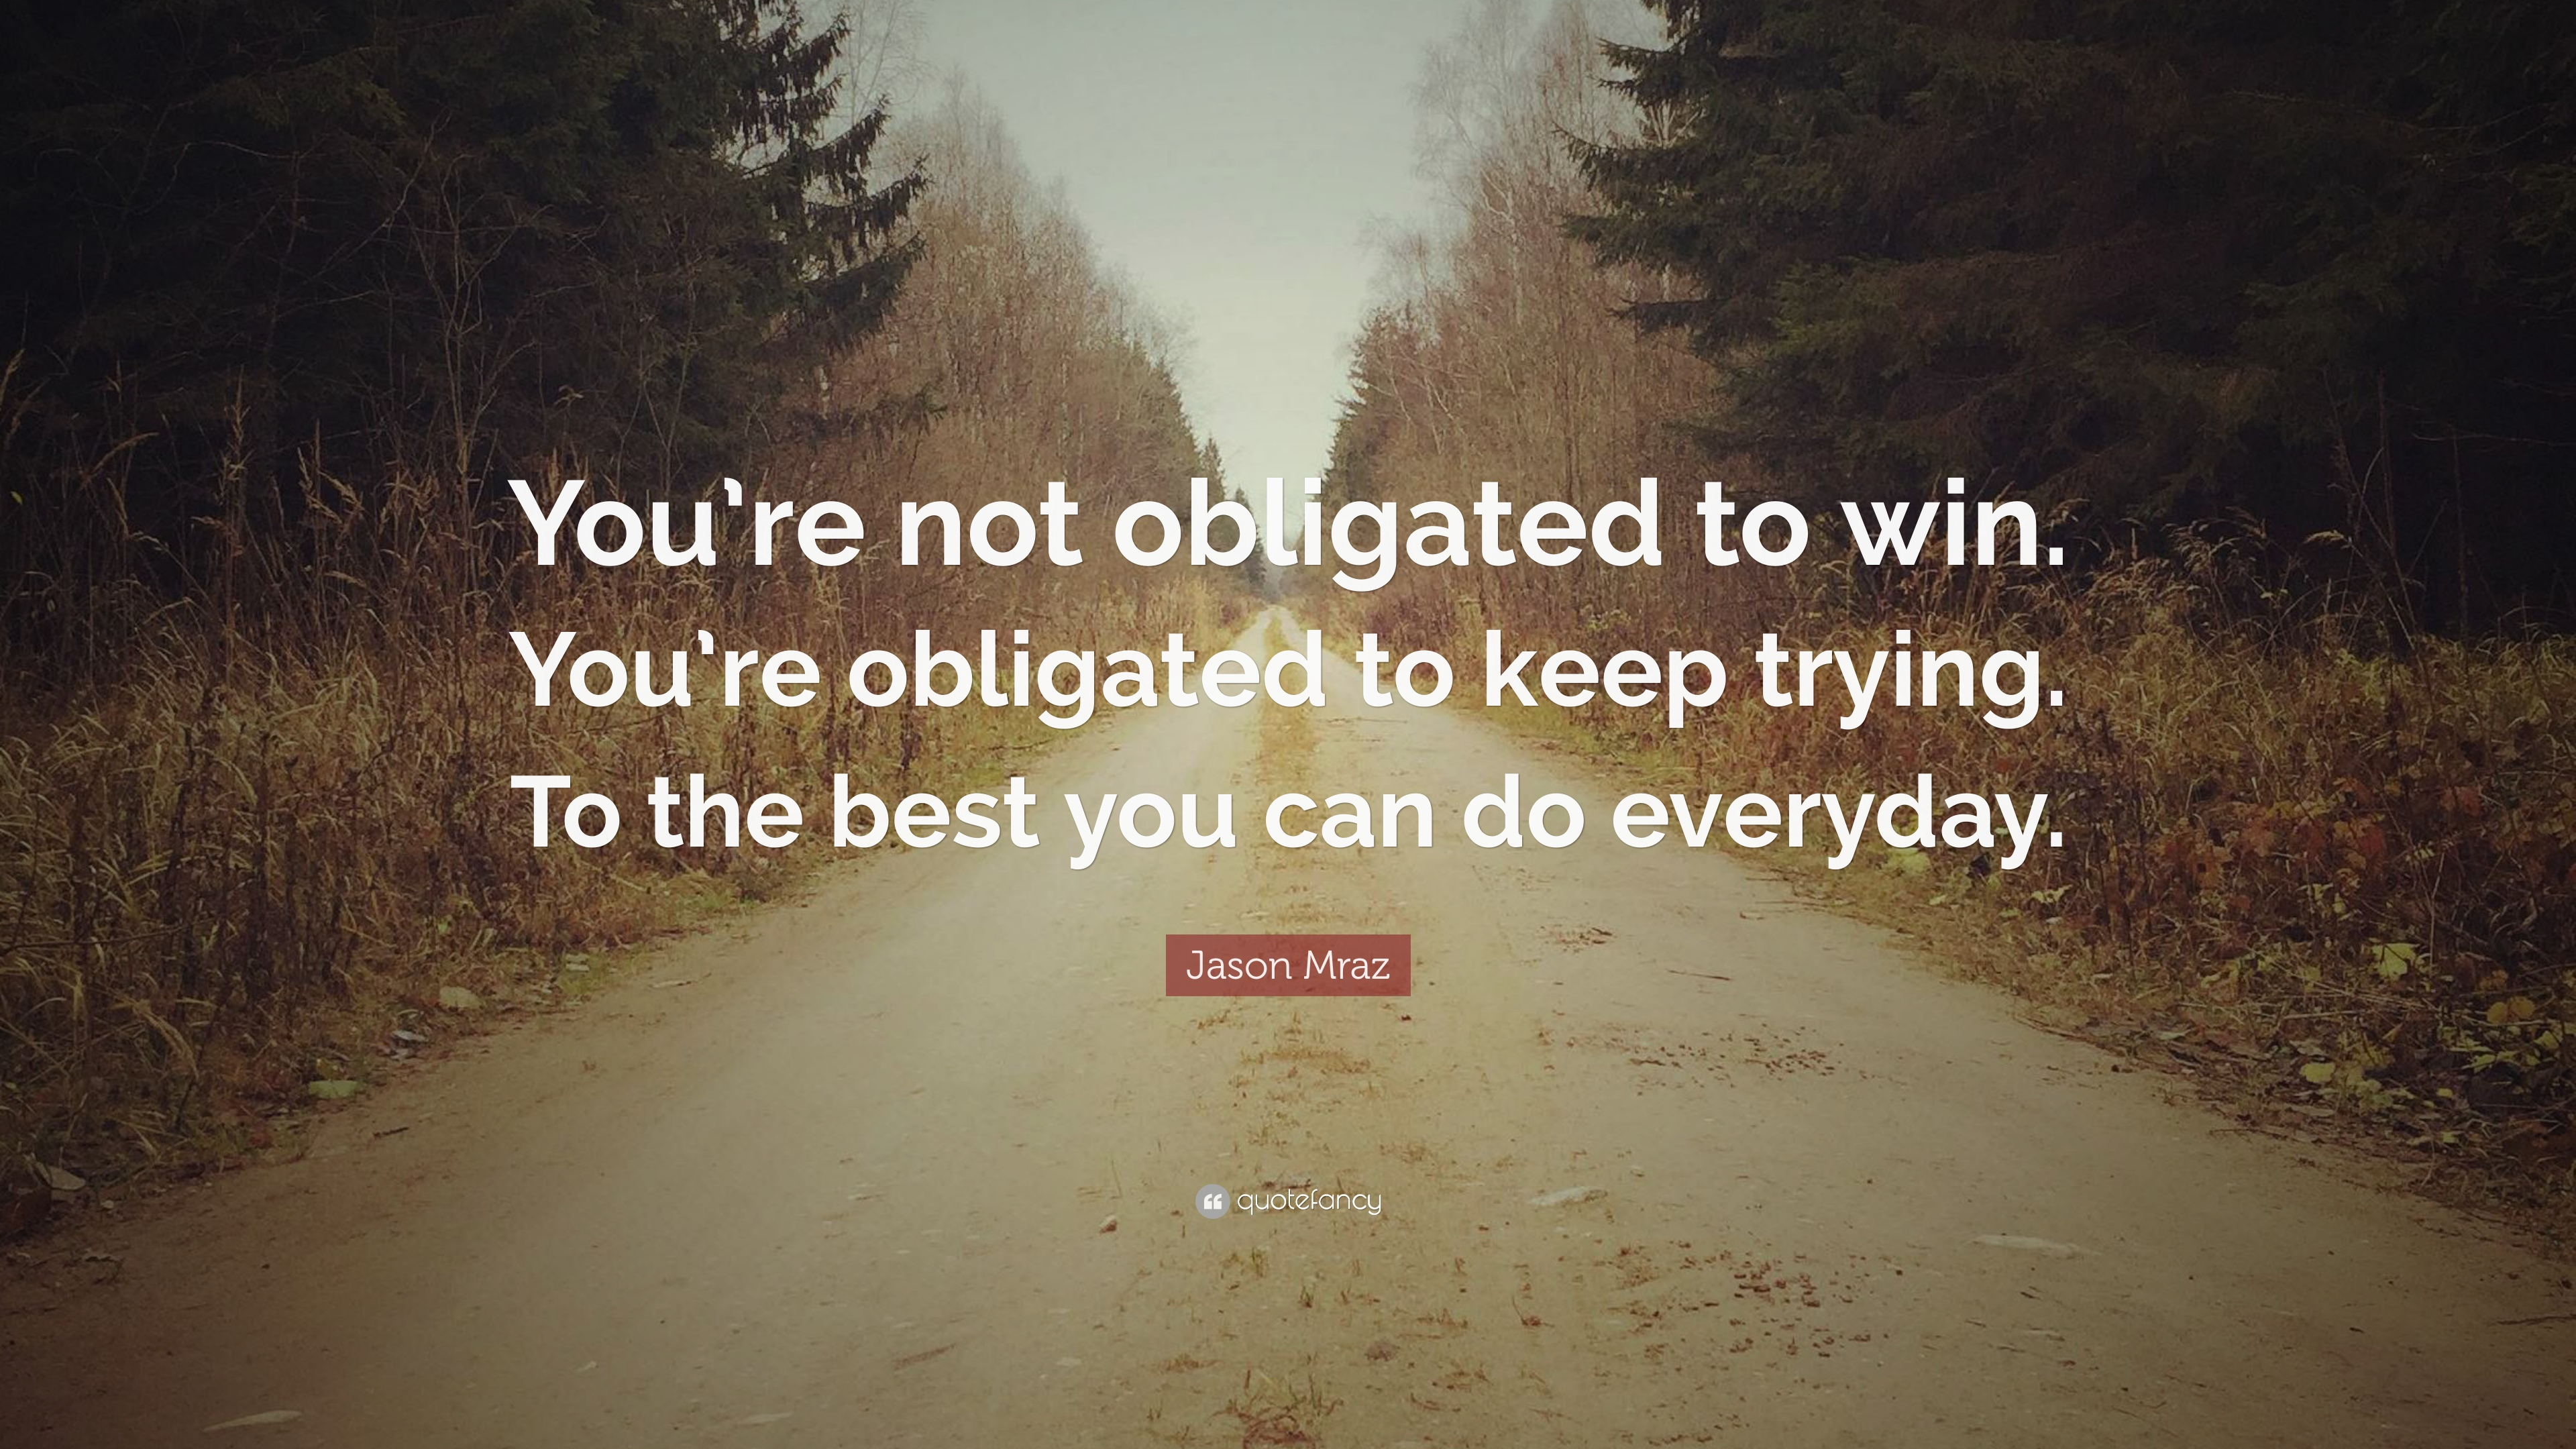 [Image]You're not obligated to win. You're obligated to keep trying. To the best you can do everyday.